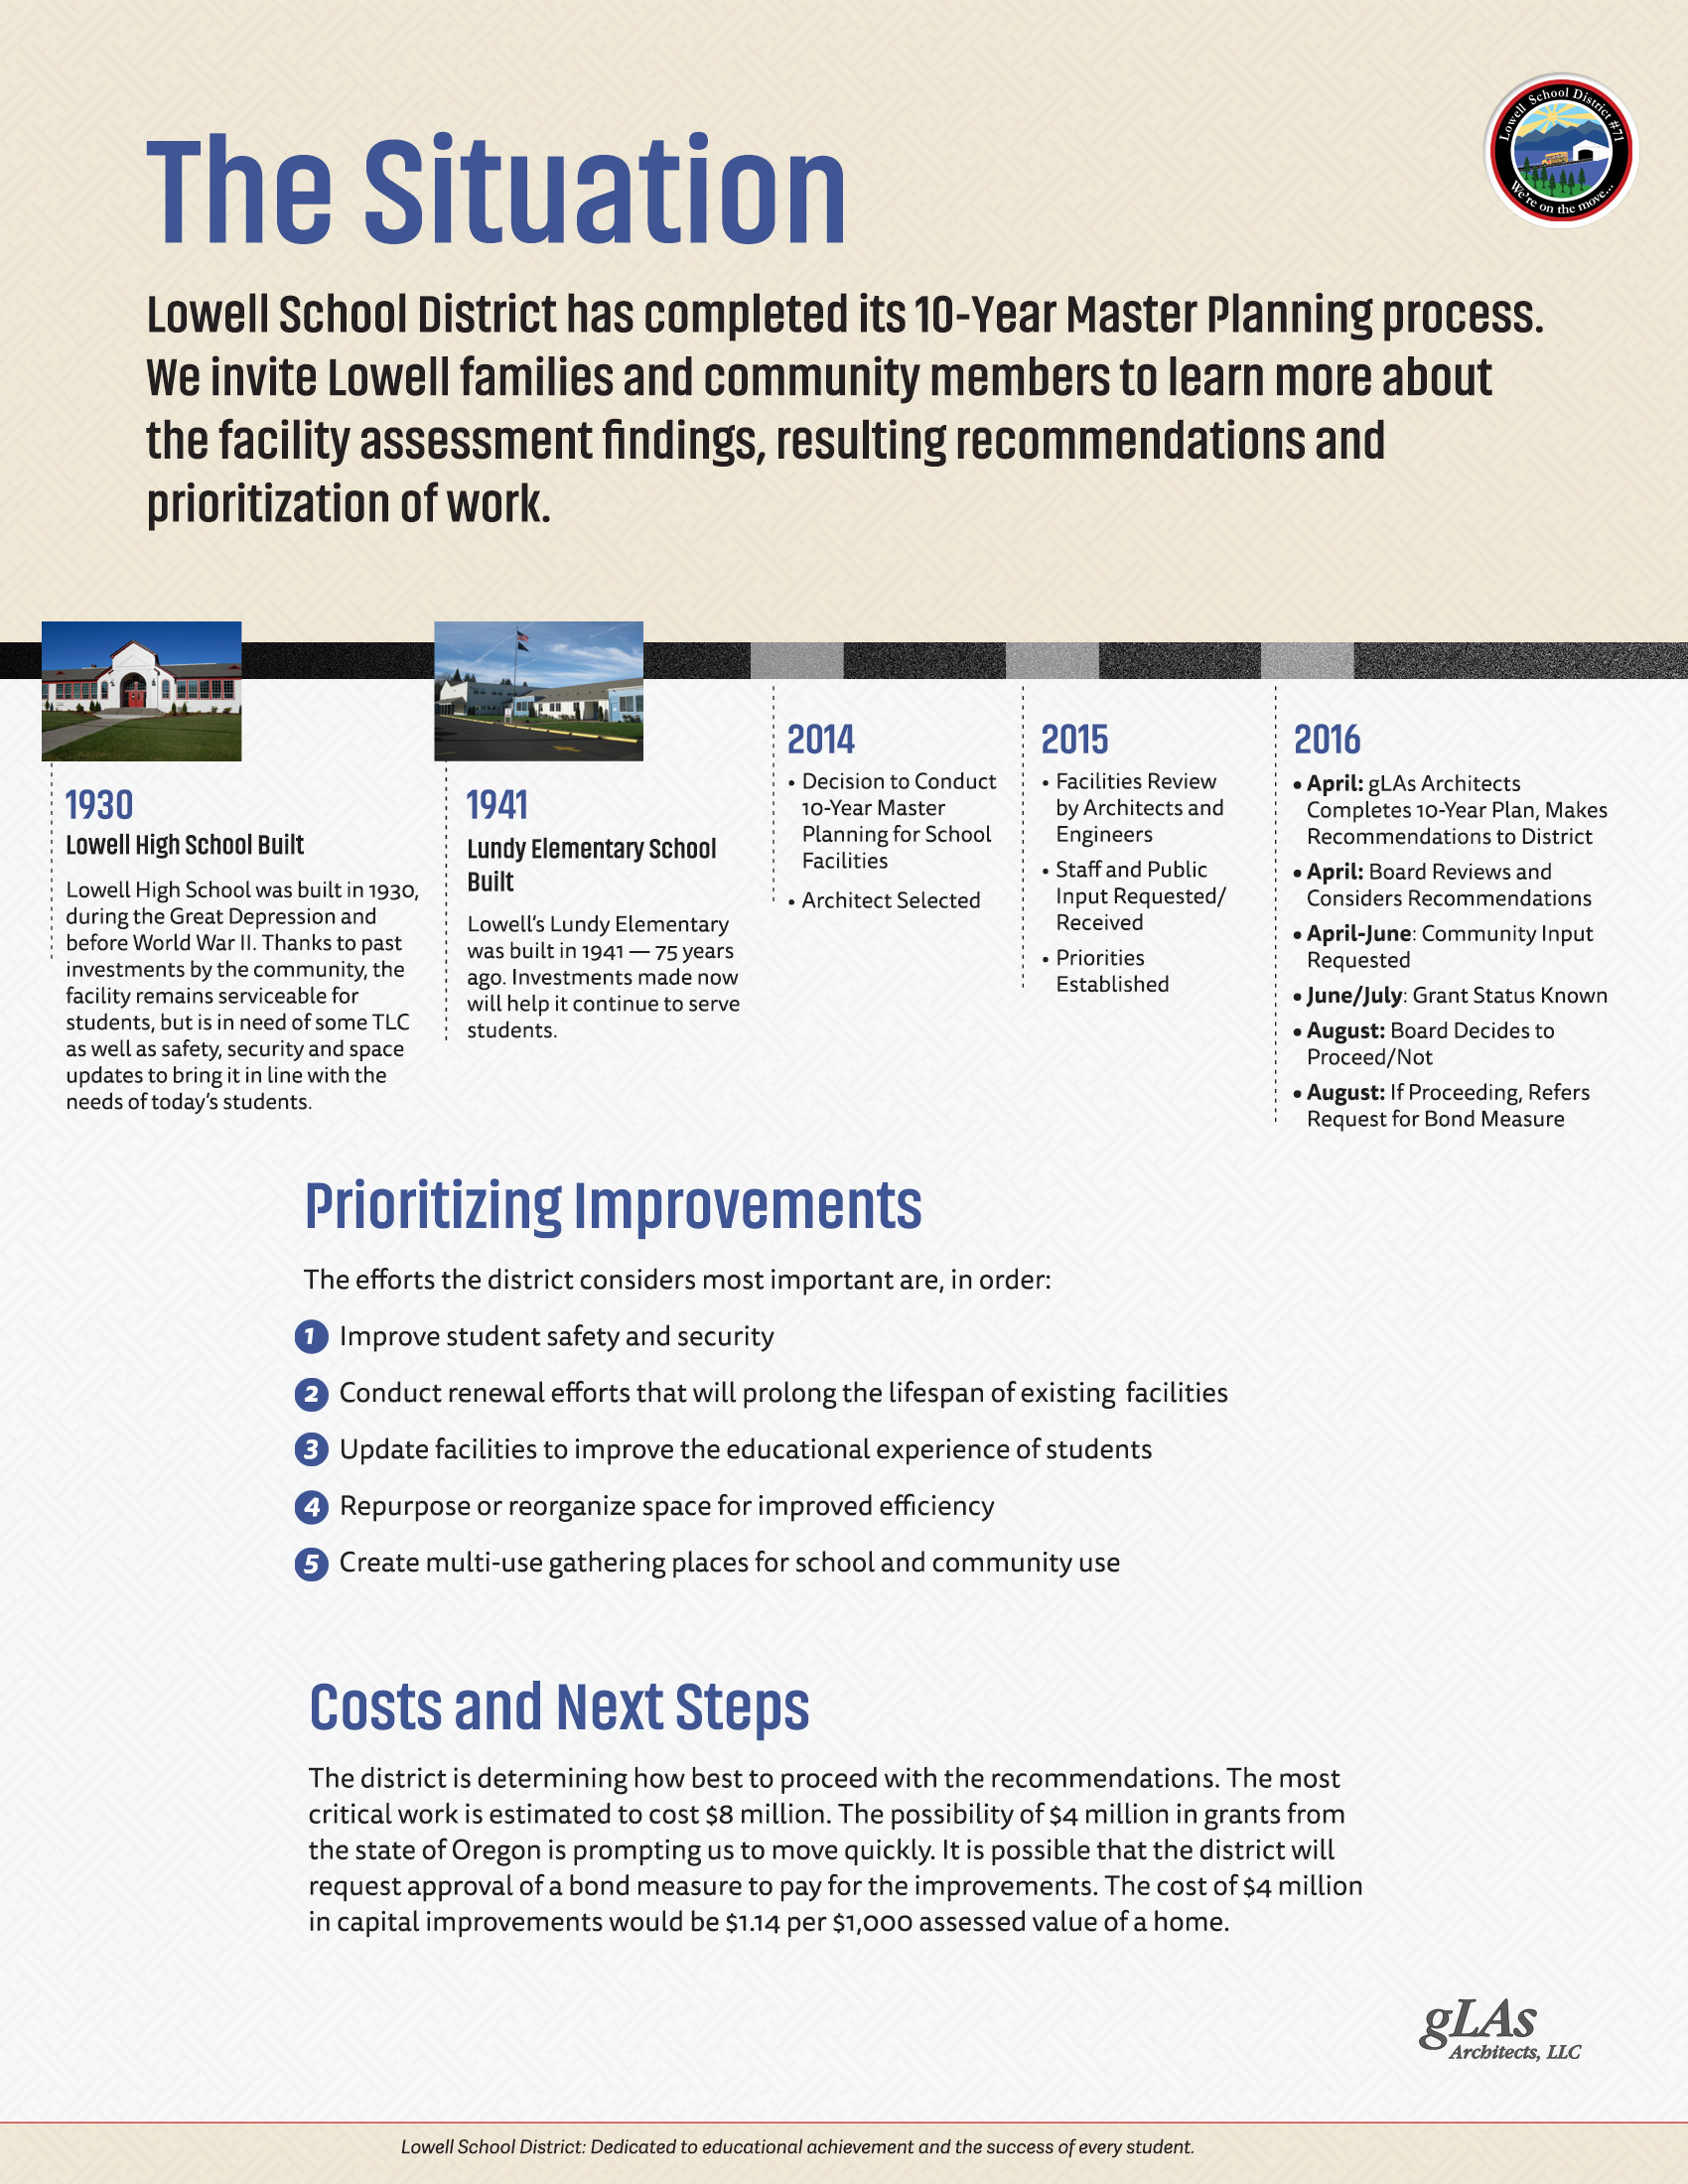 Lowell SD The Situation Facilities Improvement Plan